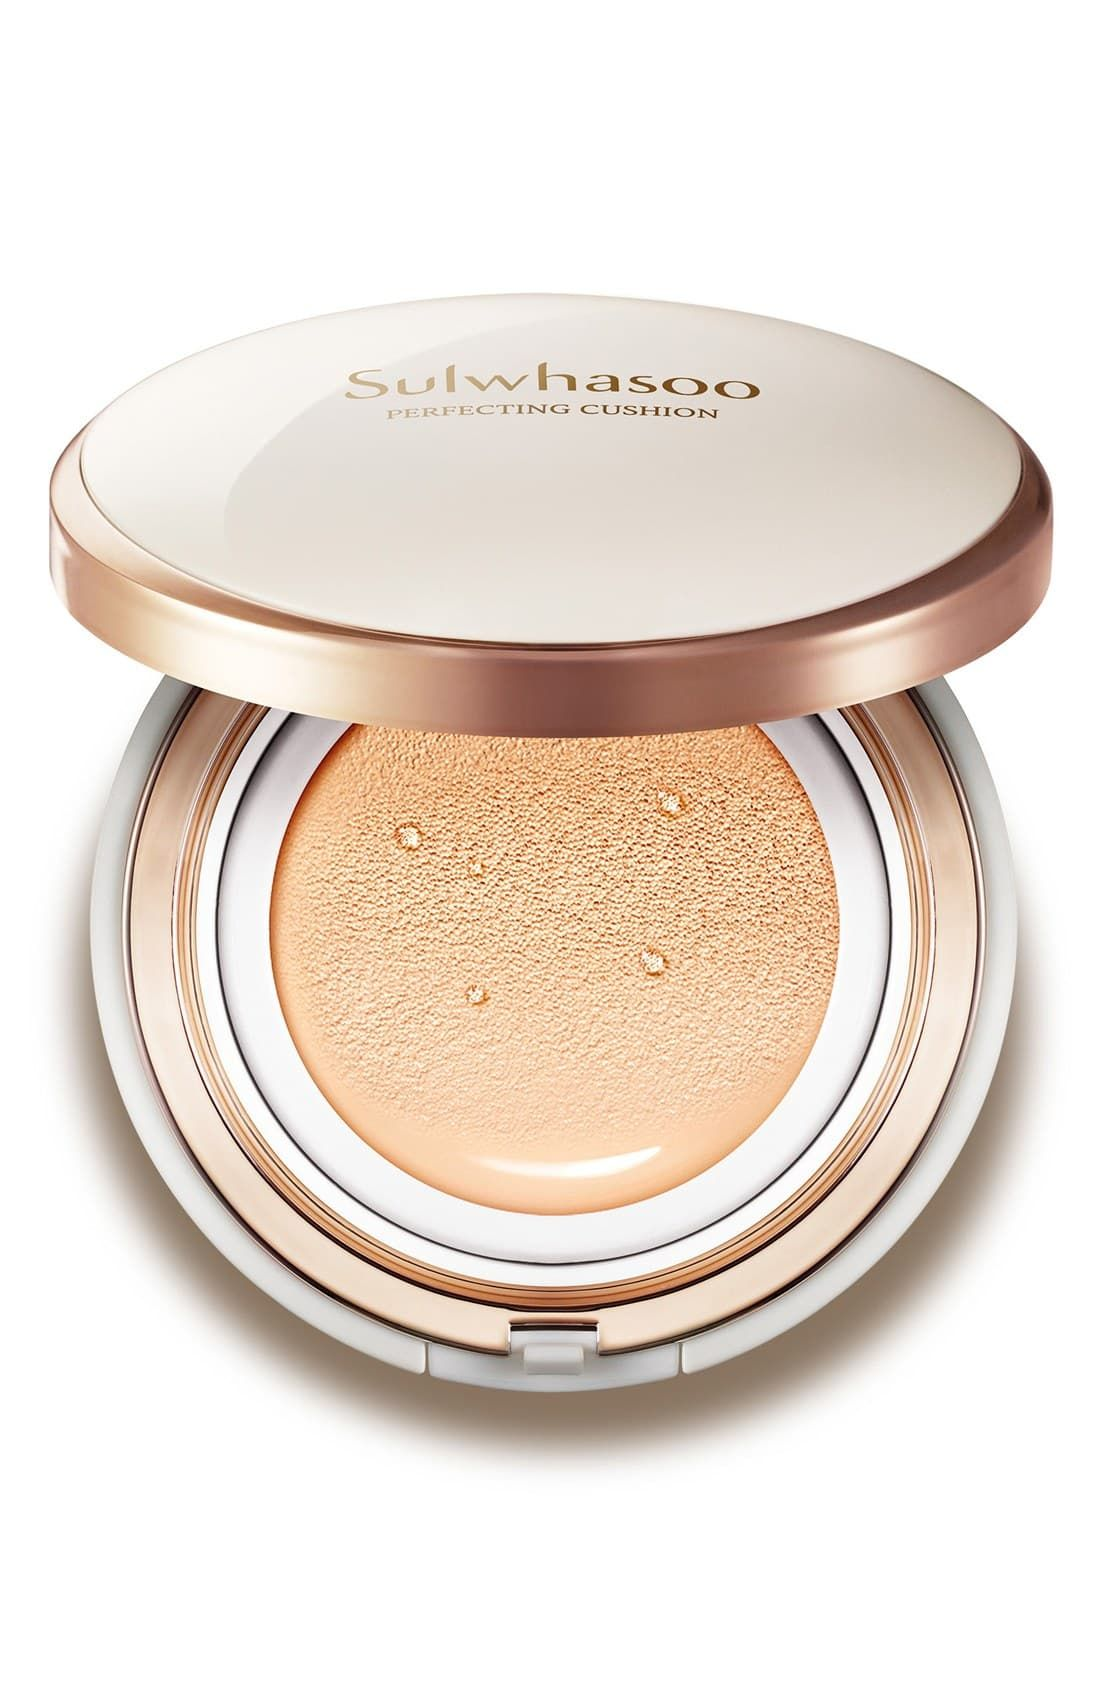 For a K-Beauty Fan Perfecting Cushion Foundation Sulwashoo $60.00 SHOP NOW Sometimes you pump out a tad too much liquid foundation and have no choice but to cake it on—but not with this product. The cushion foundation, popular in beauty mecca South Korea, ensures you'll get just the right amount of product with a sponge-like dispenser that gives you powdery, light, and long-lasting coverage.